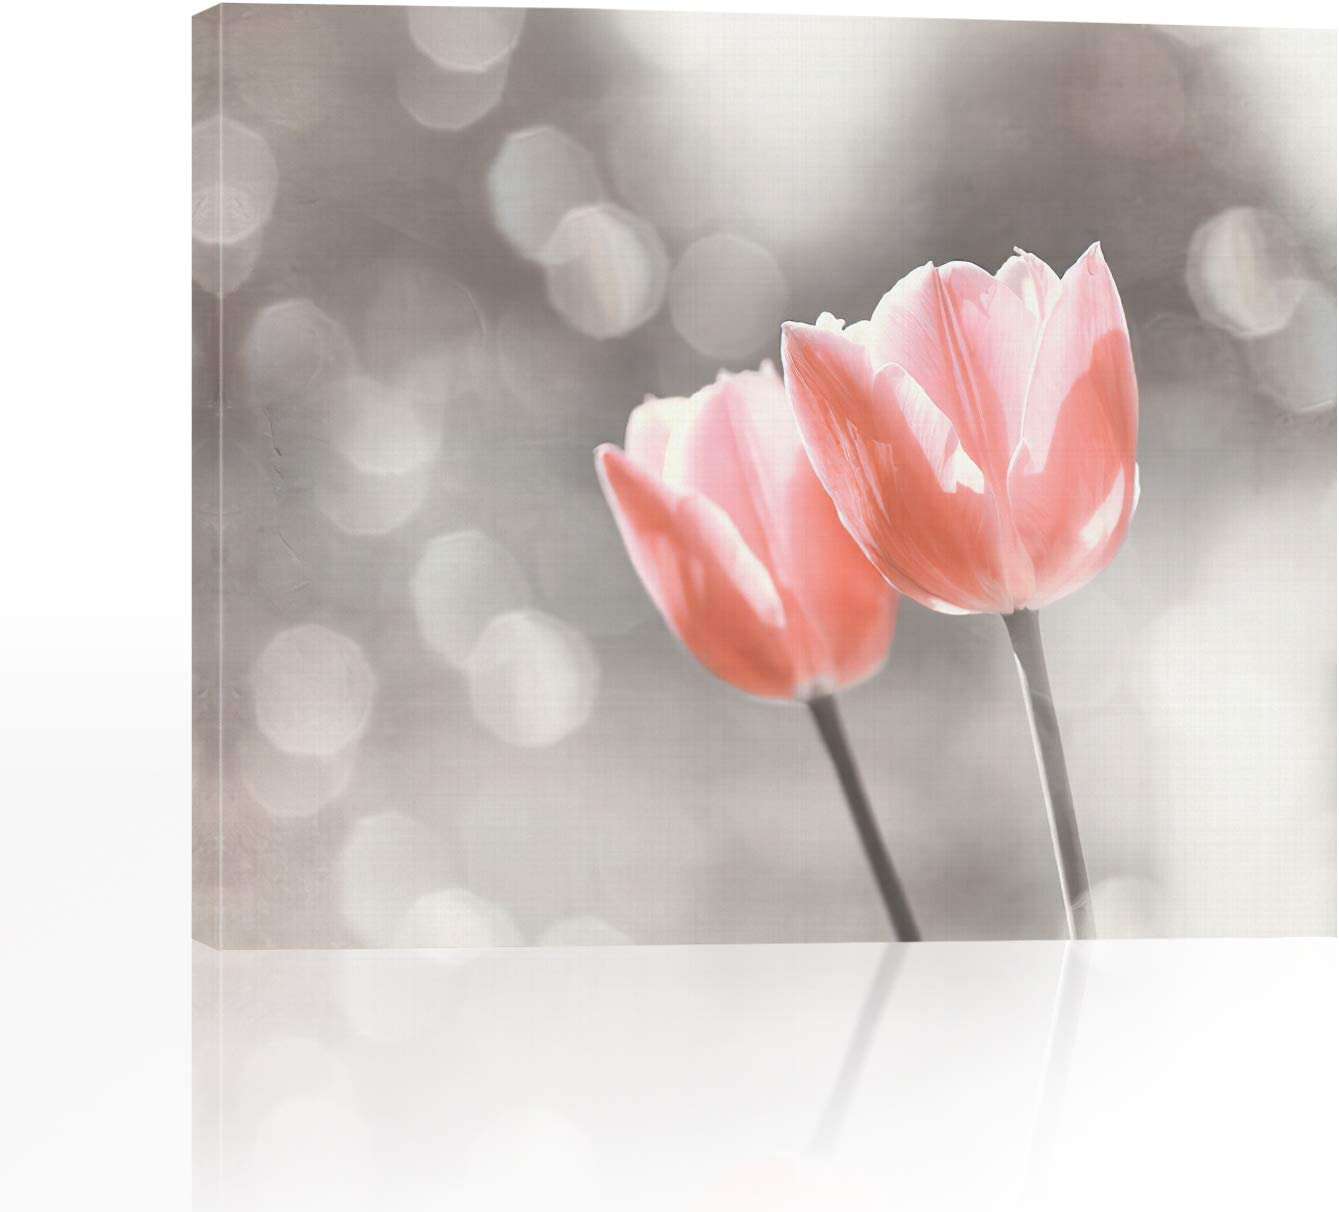 Lib Bathroom Decor Wall Art, Pink Tulip Floral Wall Art, HD Print of Landscape Canvas Wall Art for Living Room Ready to Hang 12x16inch